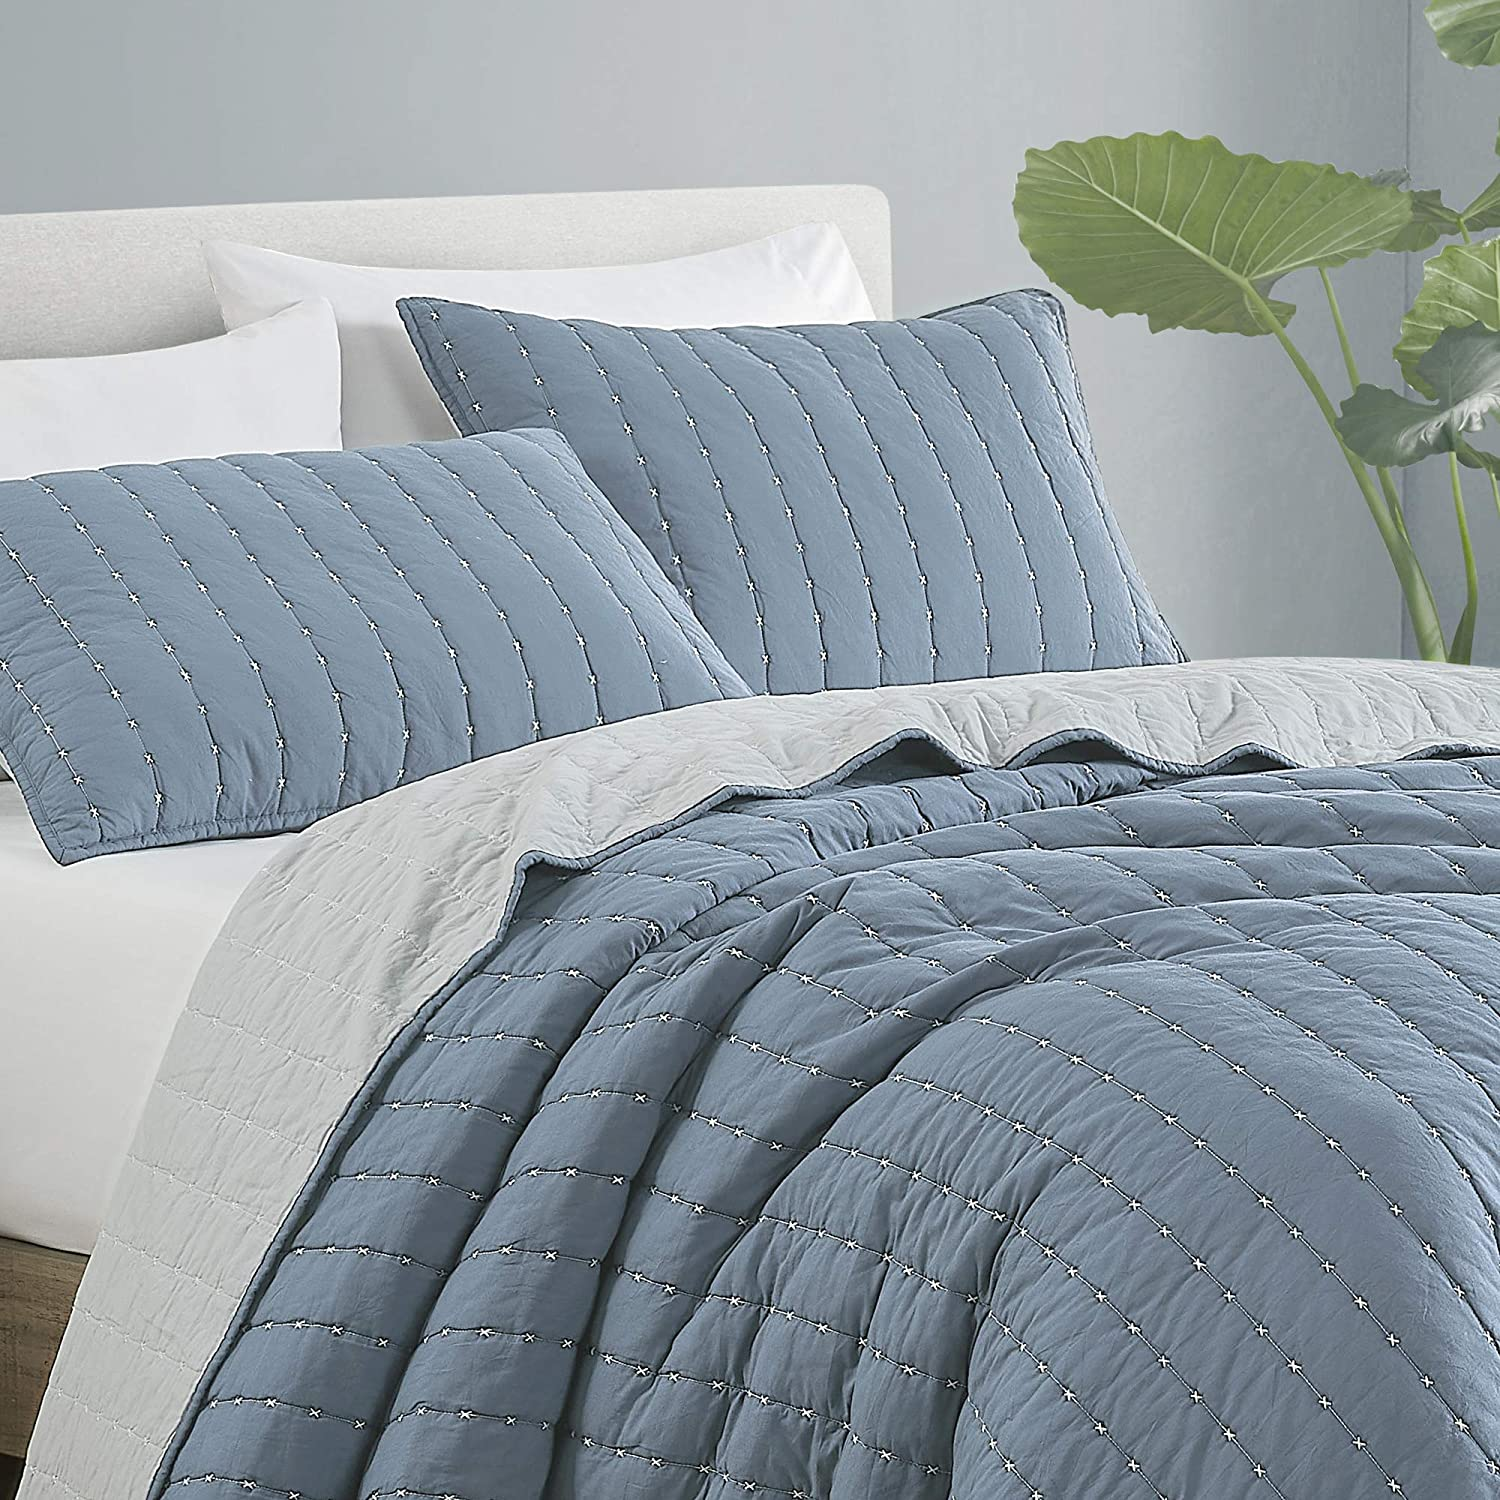 SHALALA NEW YORK Reversible Cotton Quilt Set - Garment Washed Ultra Soft - Breathable Lightweight X-Stitching Quilt with 2 Quilted Pillow Shams for All Season - Machine Washable